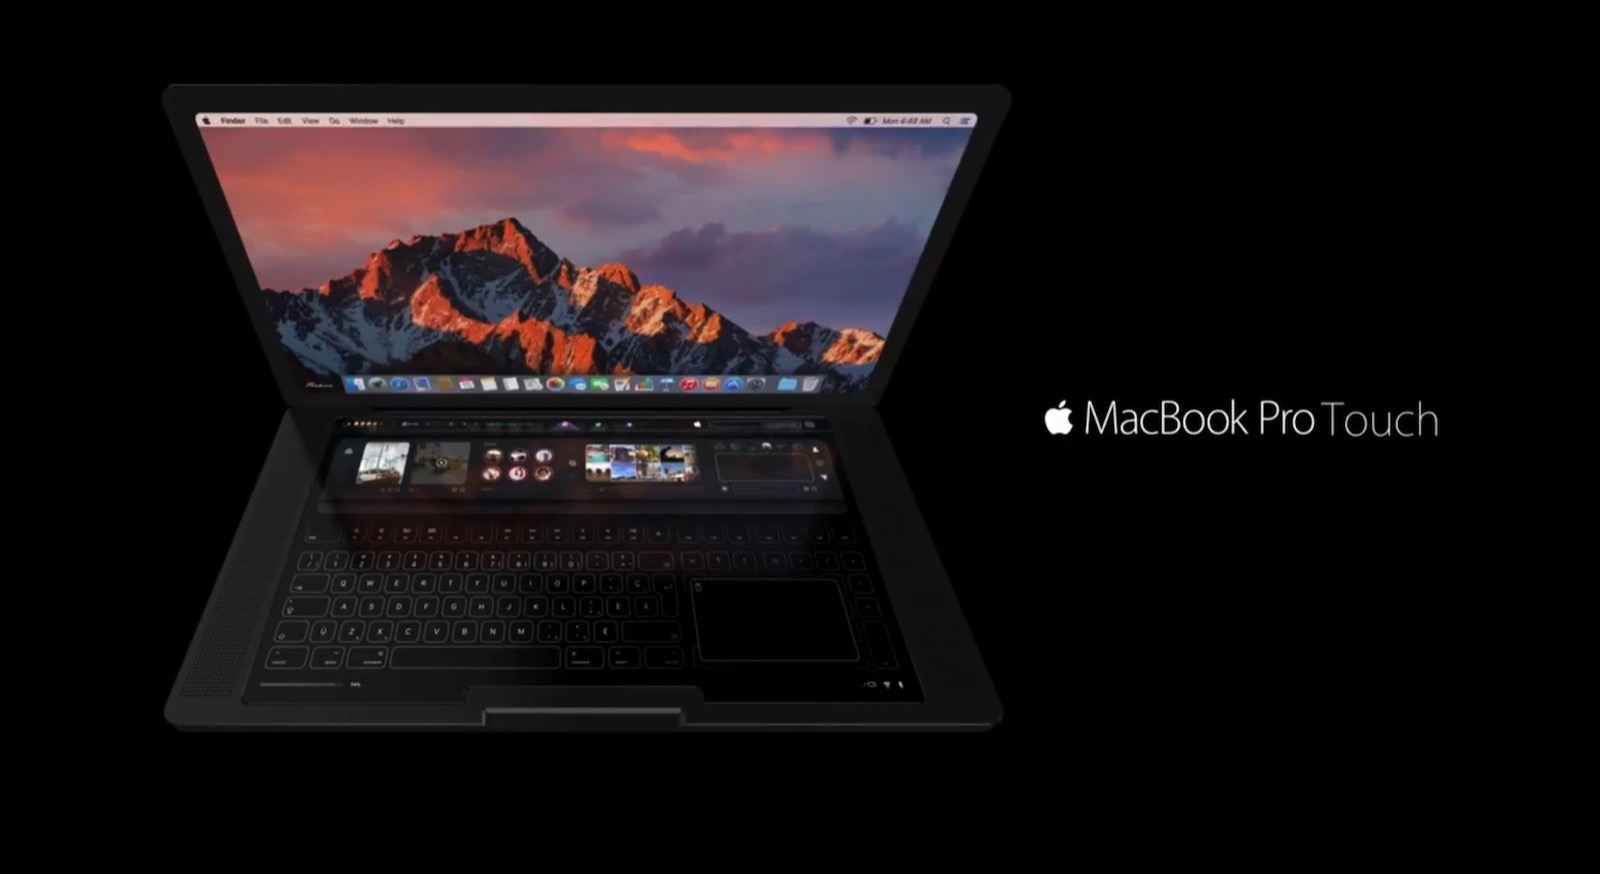 Disastrous MacBook Pro Touch Concept Image